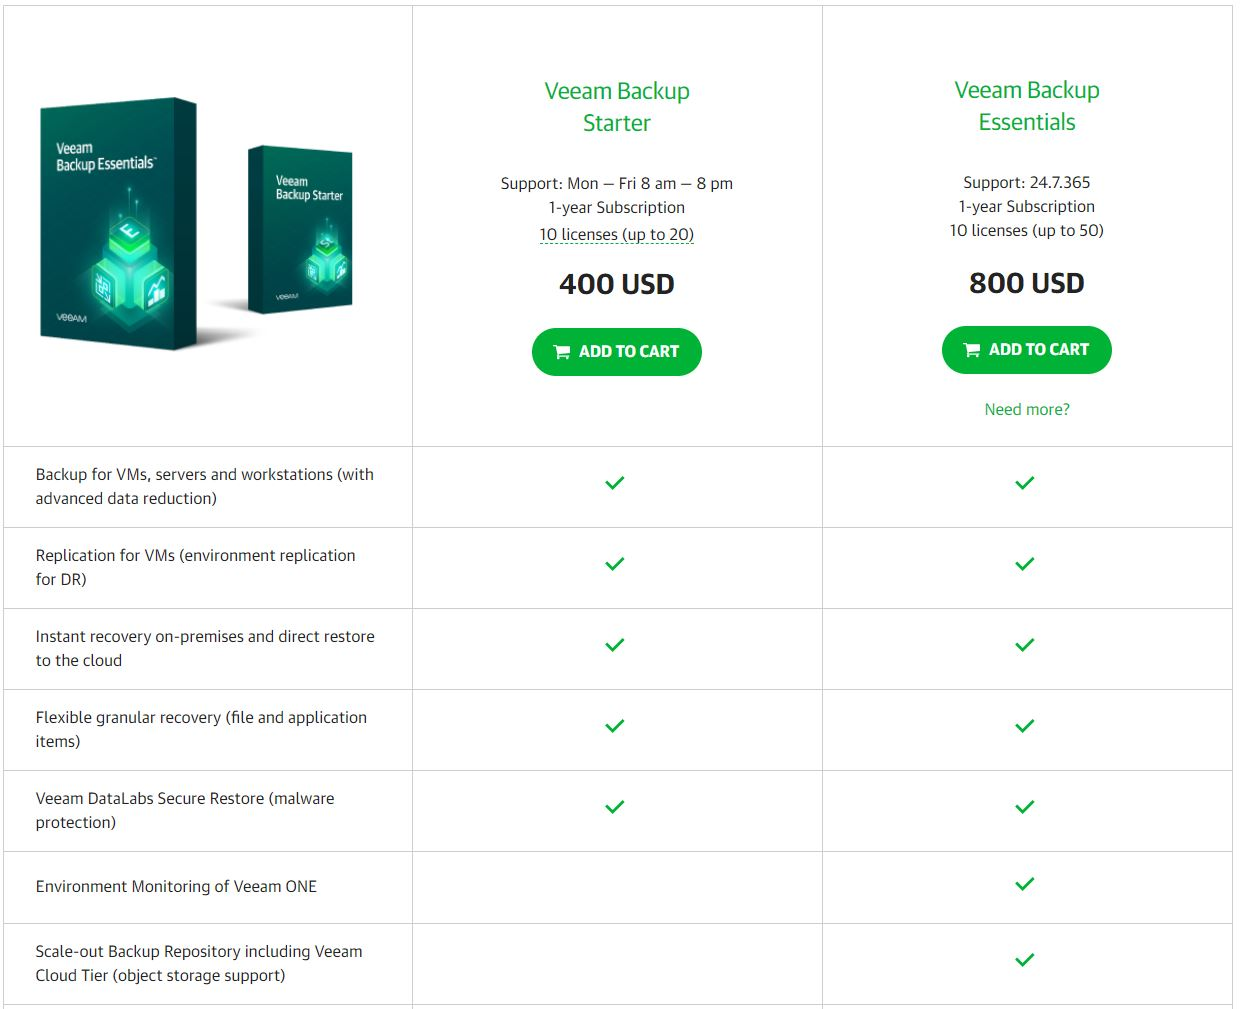 Veeam Backup Starter And Veeam Backup Essentials